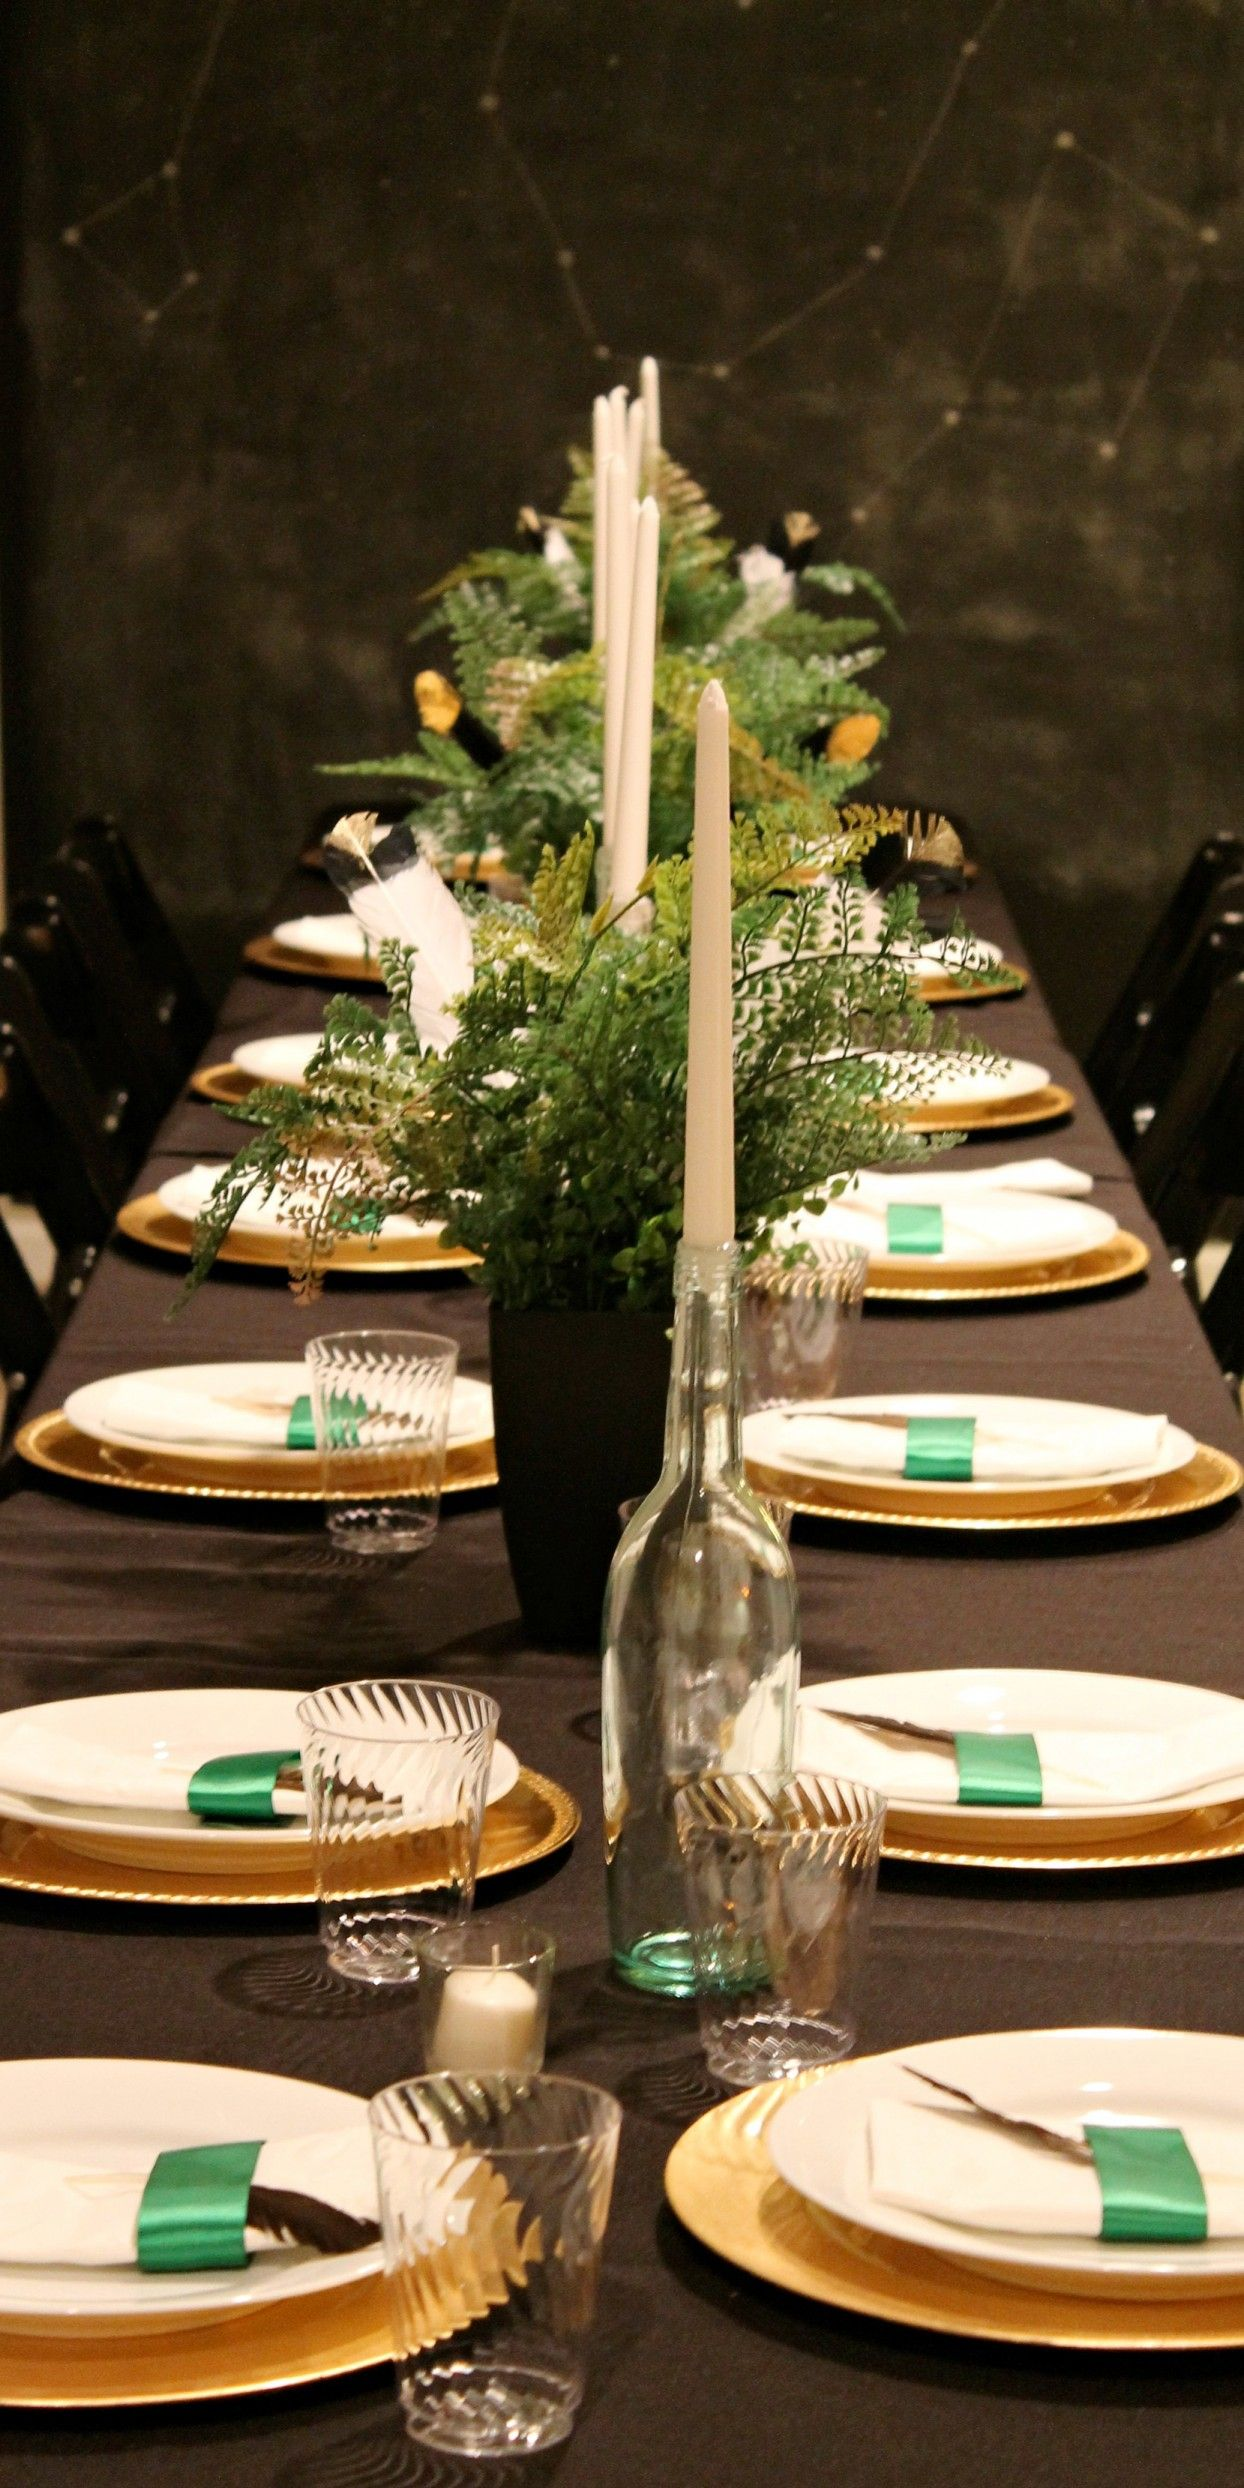 Ferns And Feathers Christmas Dinner Party Table Decorations With Neutral  Themed Table And Dining Settings And White Tablewares Feats Fern And Turkey  Feather ...